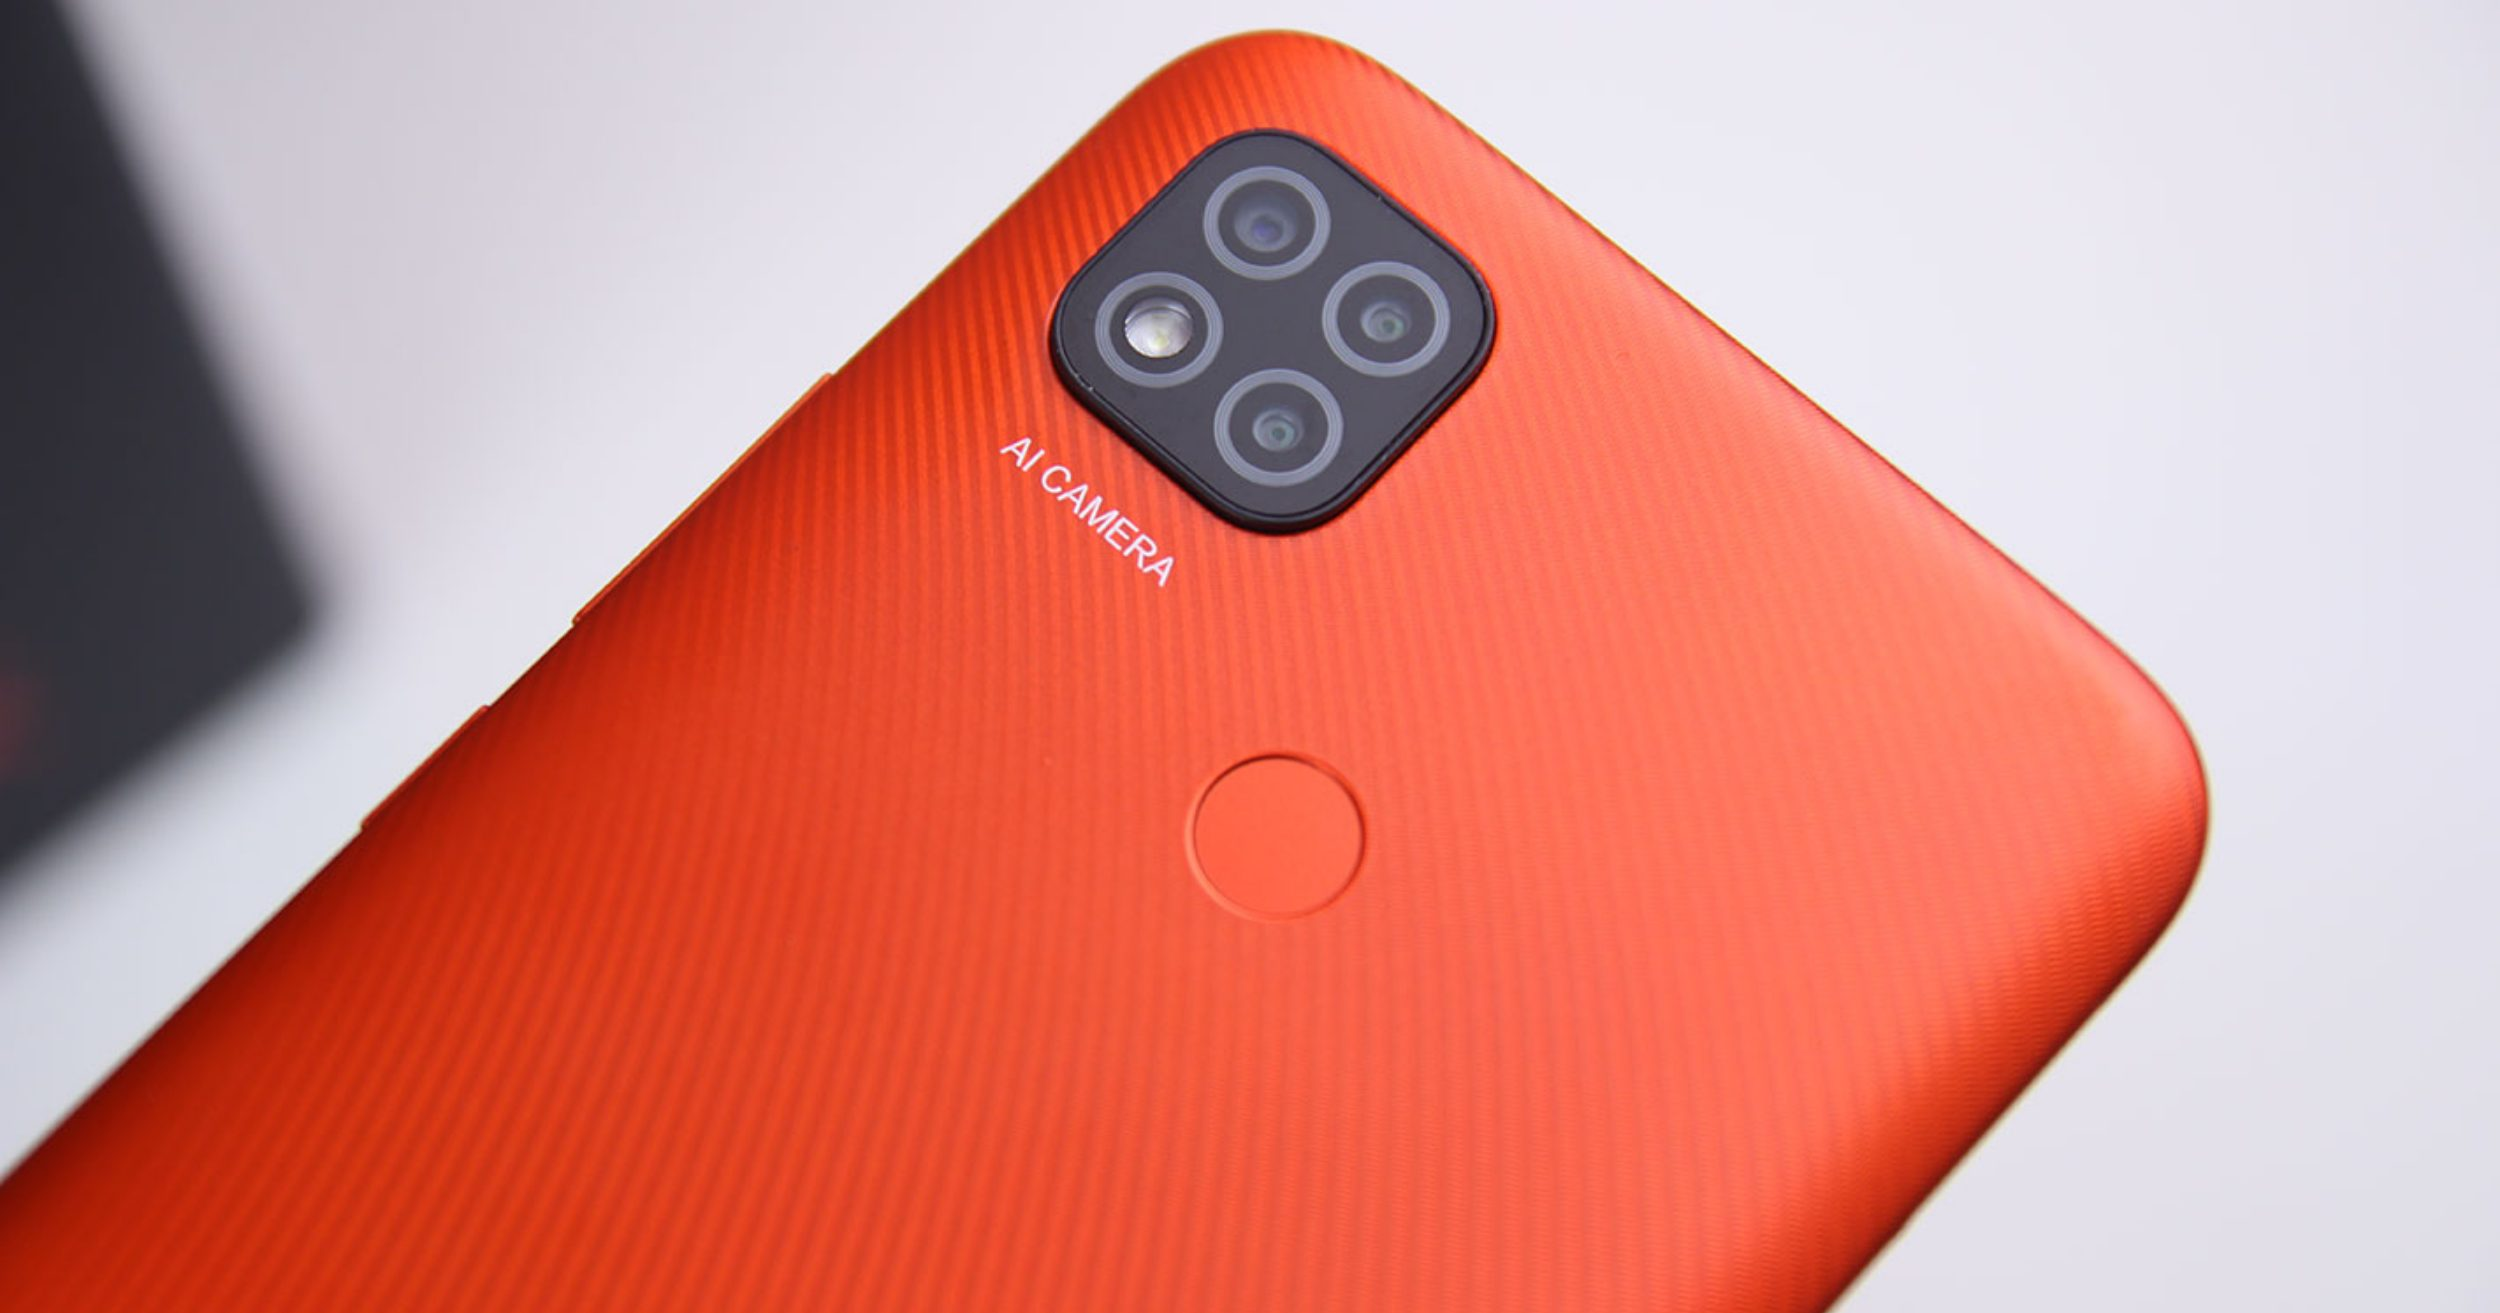 price-drop-alert-for-redmi-9a-and-redmi-9c-with-5000mah-battery